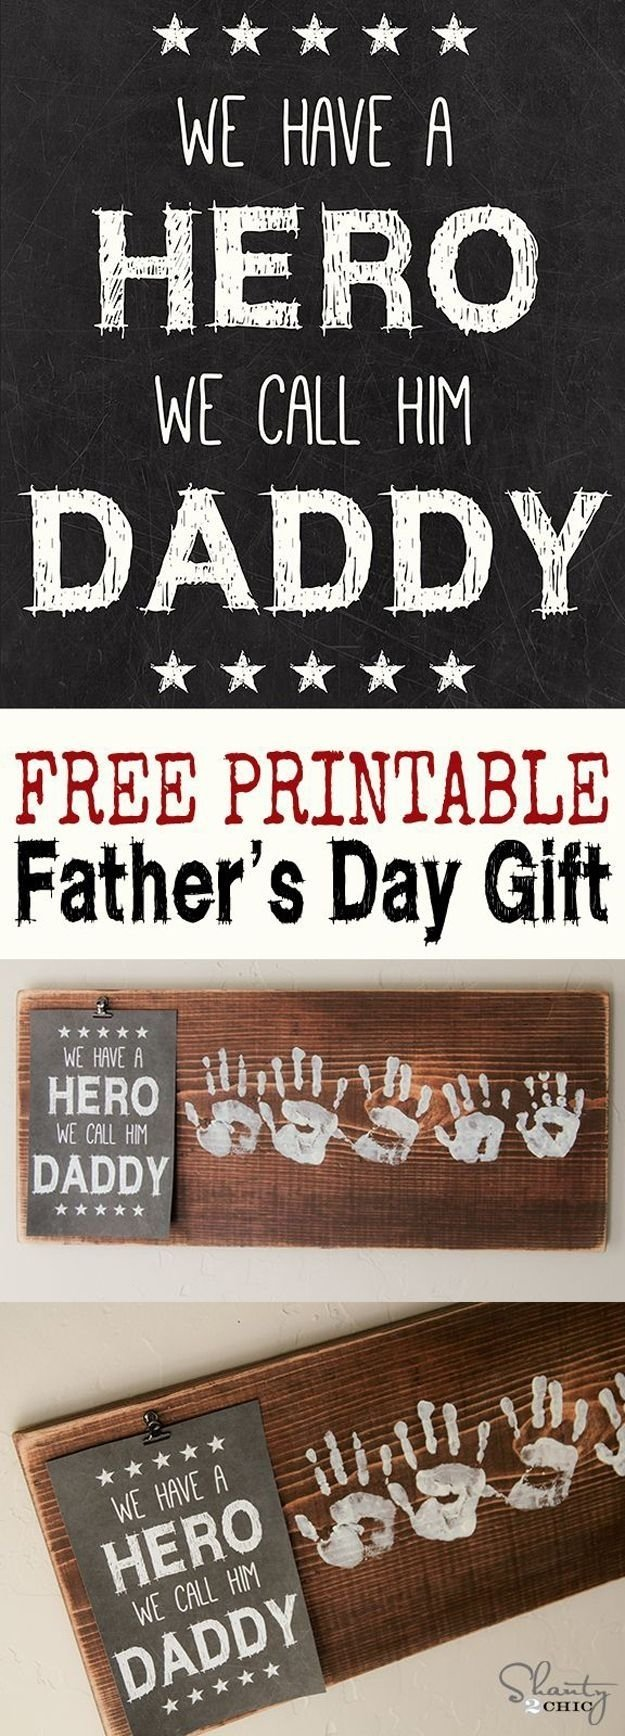 10 Fabulous Gift Ideas For Dad From Son 36 best diy fathers day gifts images on pinterest mothers day